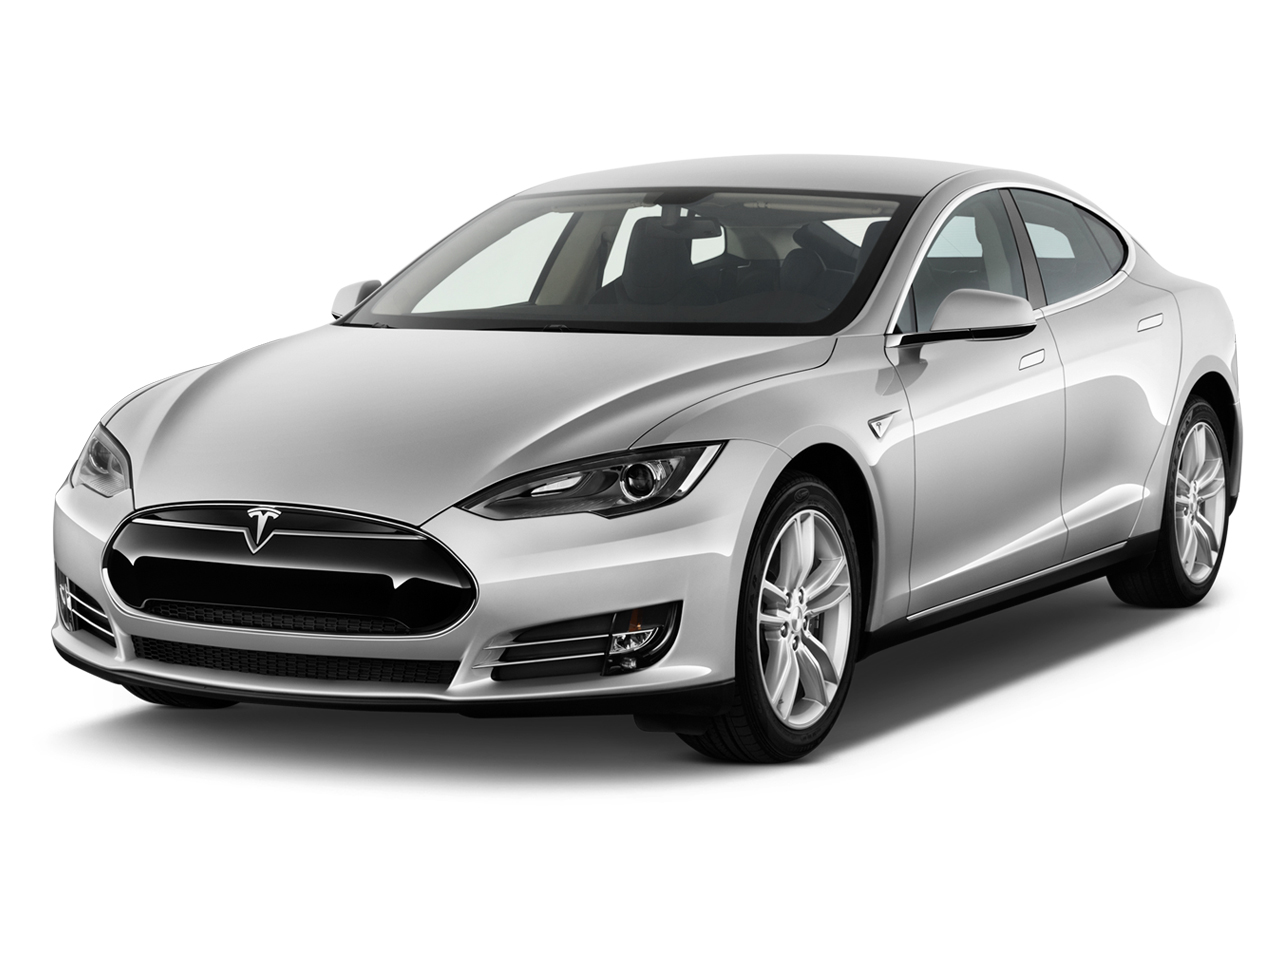 Tesla Model S Vs Porsche Panamera Compare Cars